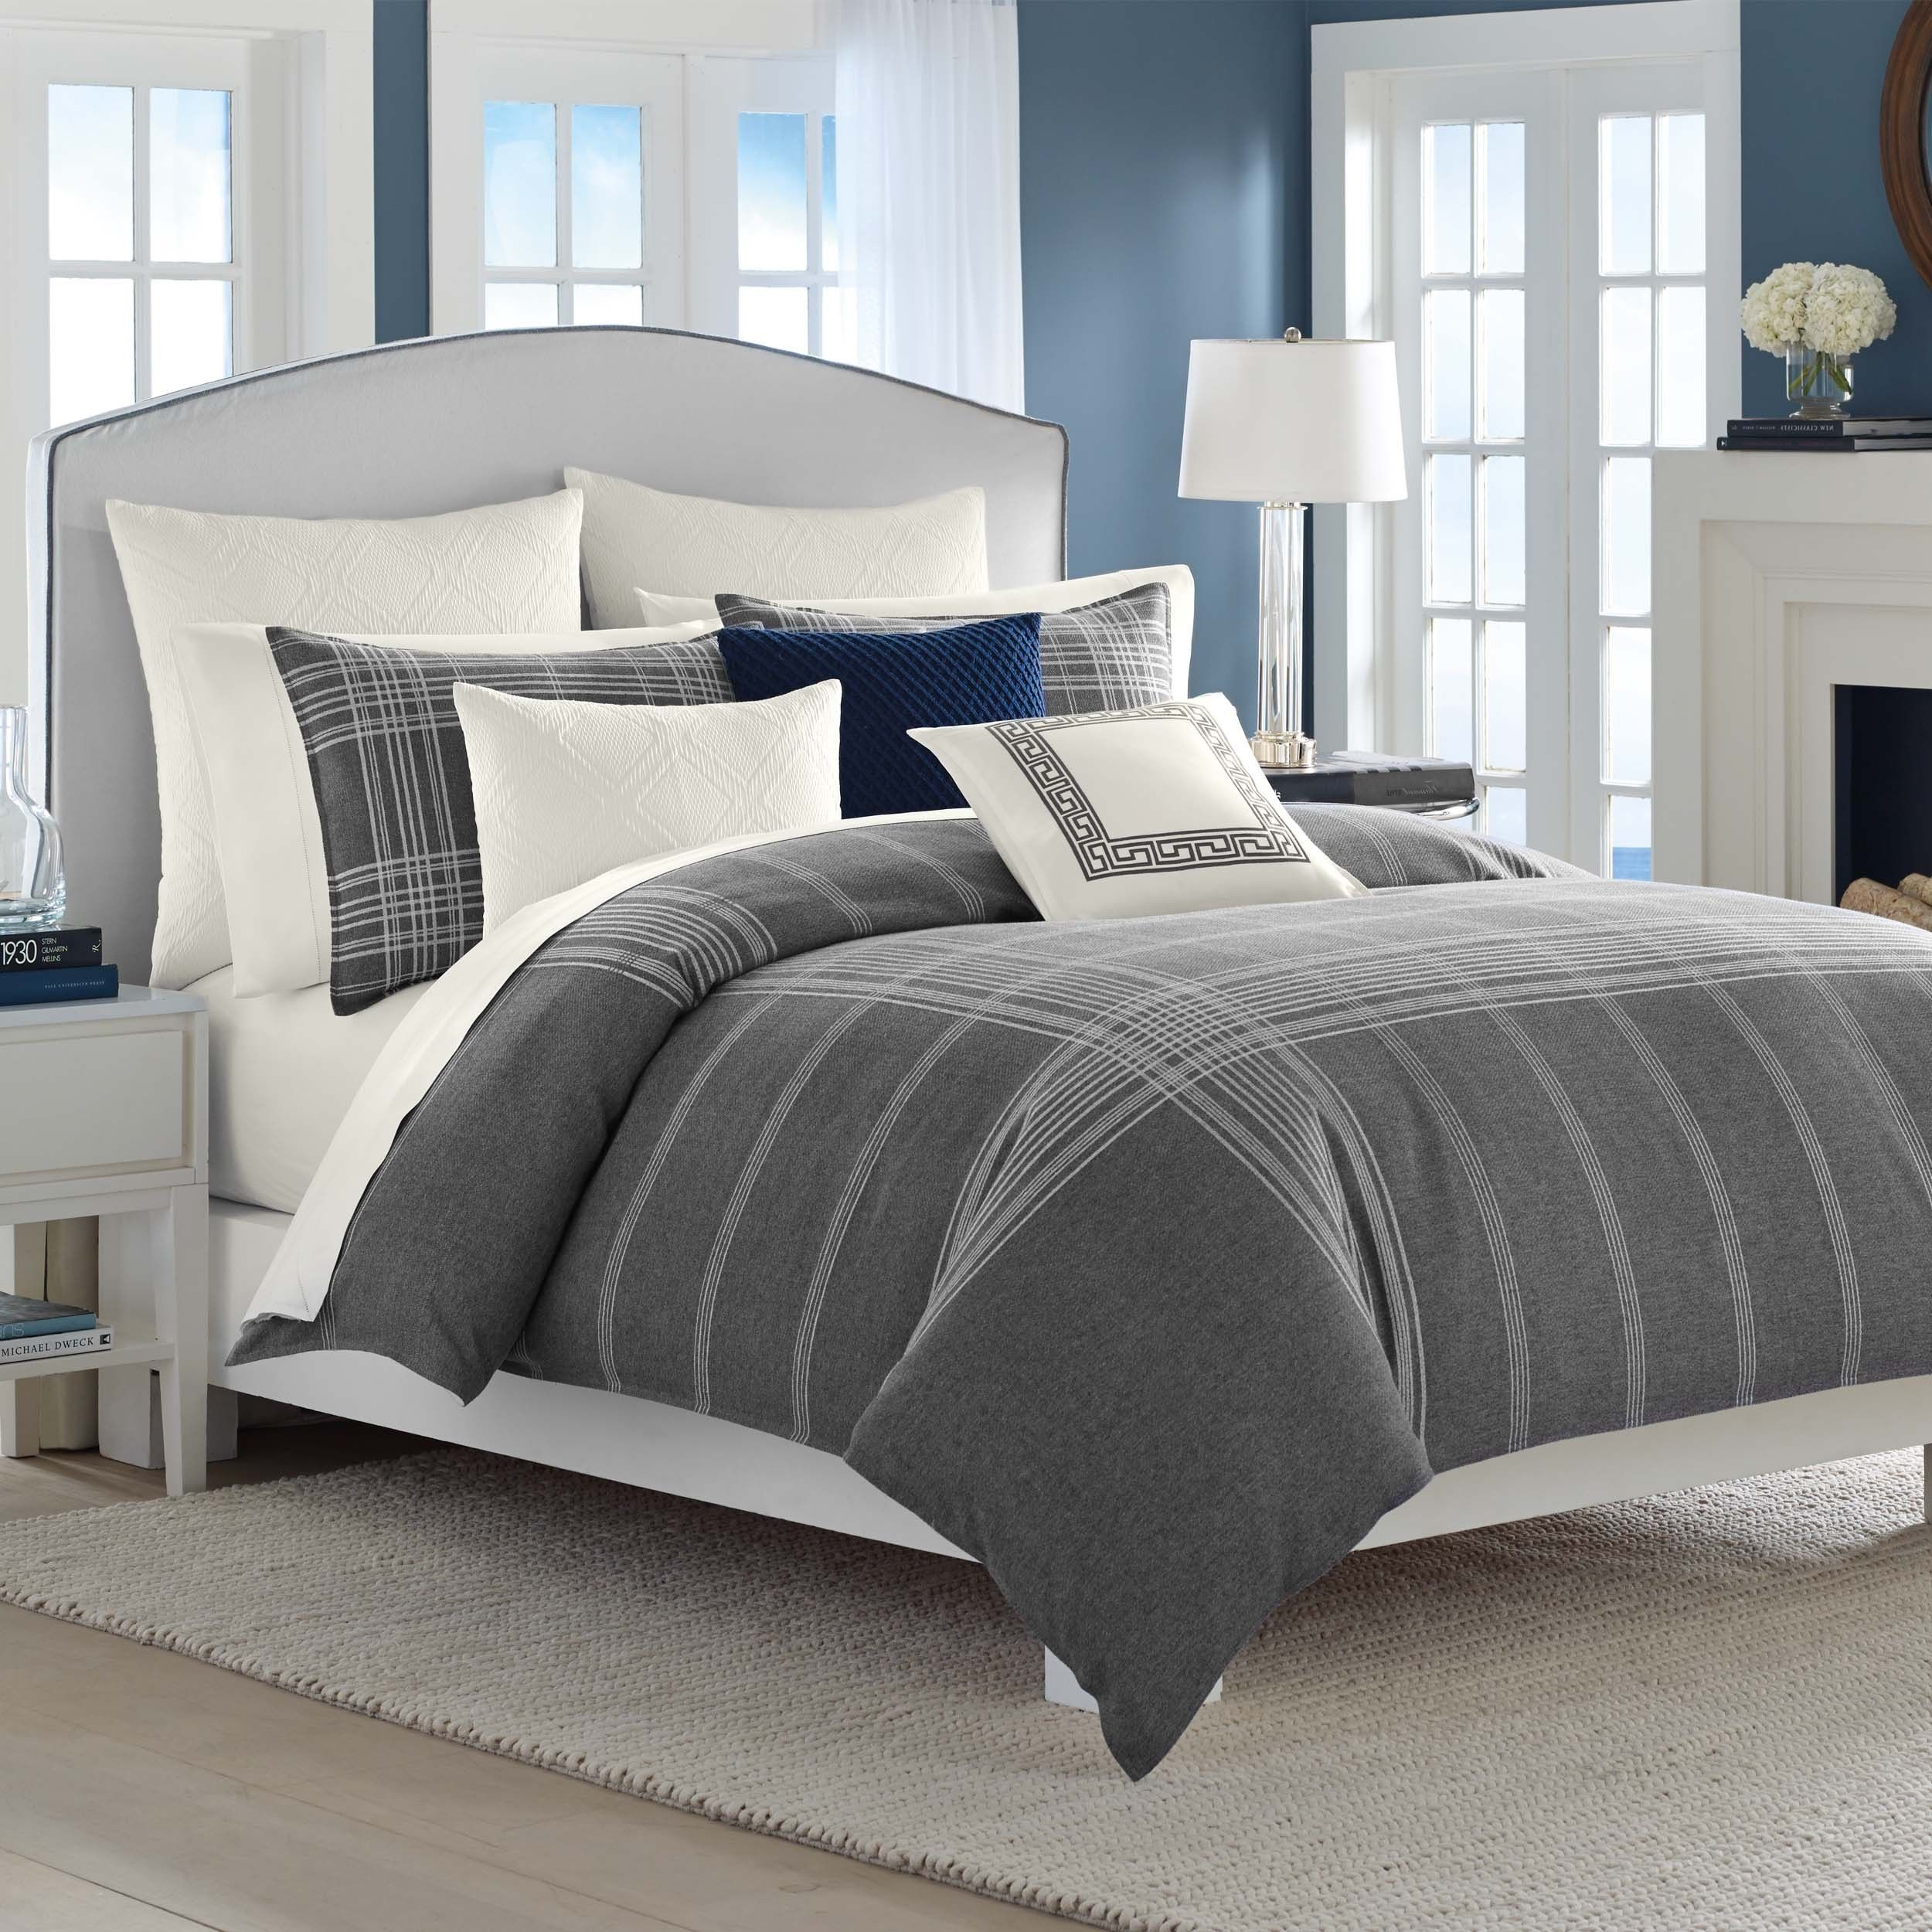 york comforter idea plush king burgundy by plans sets for queen red intended reversible j hotel bridgeport throughout nautica bedding set new